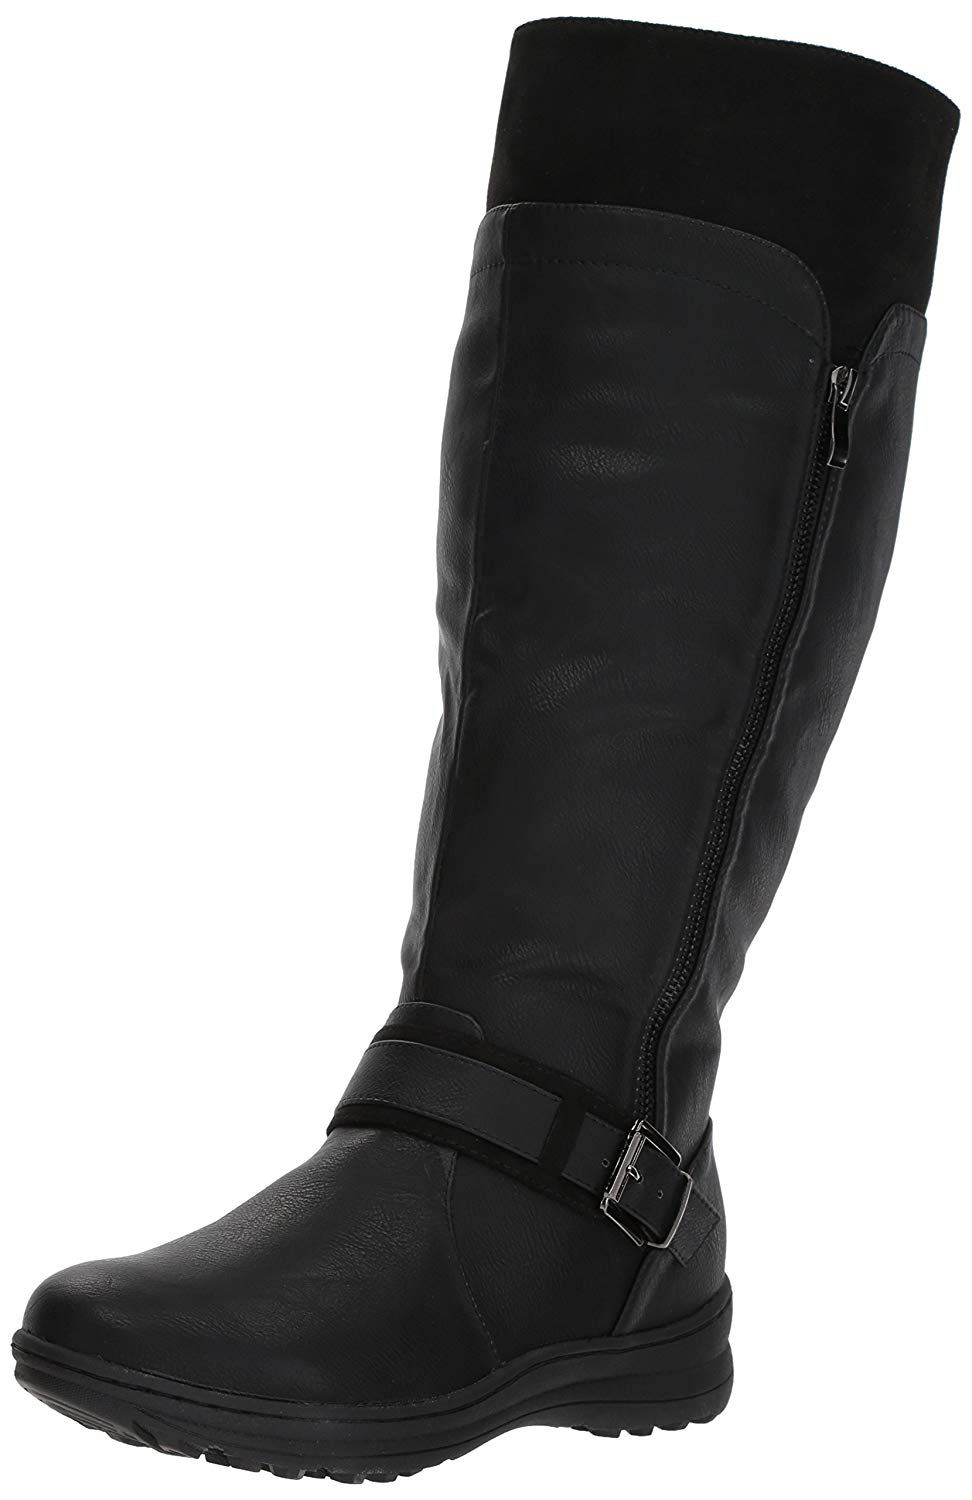 5e063617f4e DREAM PAIRS Women s Siberian Faux Fur Lined Knee High Winter Snow Boots (Wide  Calf Available) -- Nice of you to drop by to view the image.